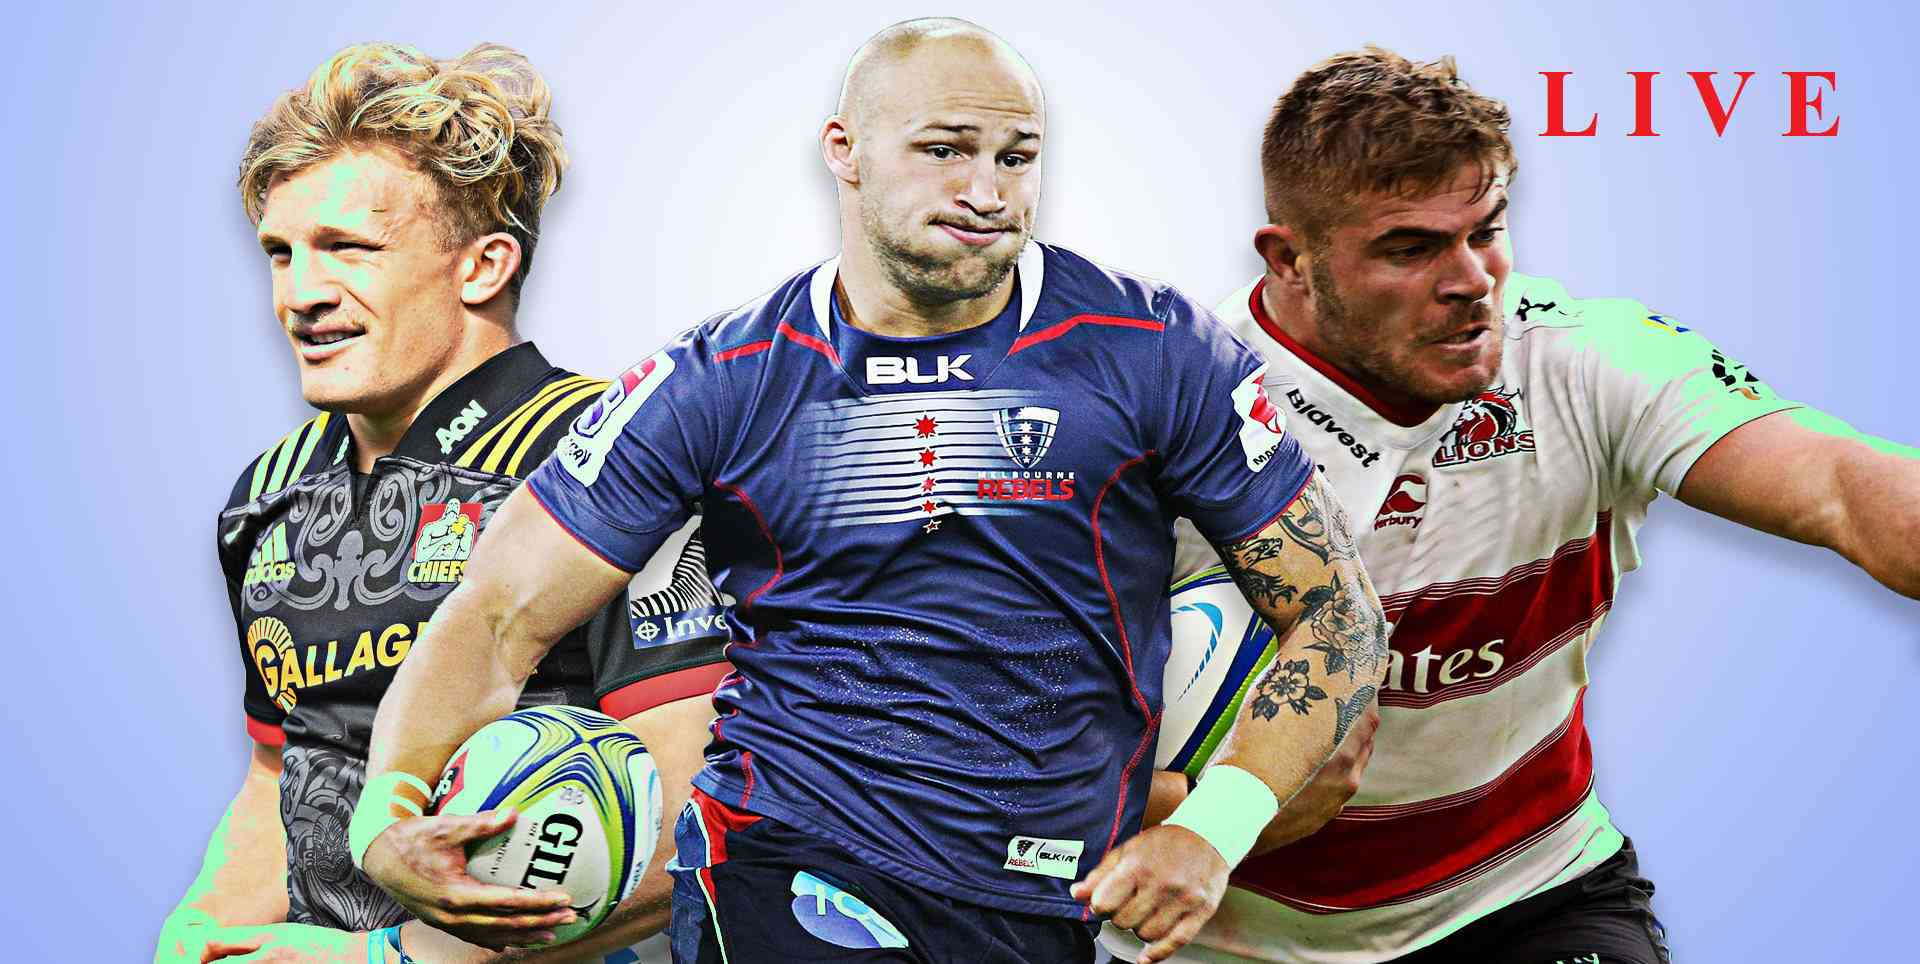 stade-francais-paris-vs-edinburgh-rugby-live